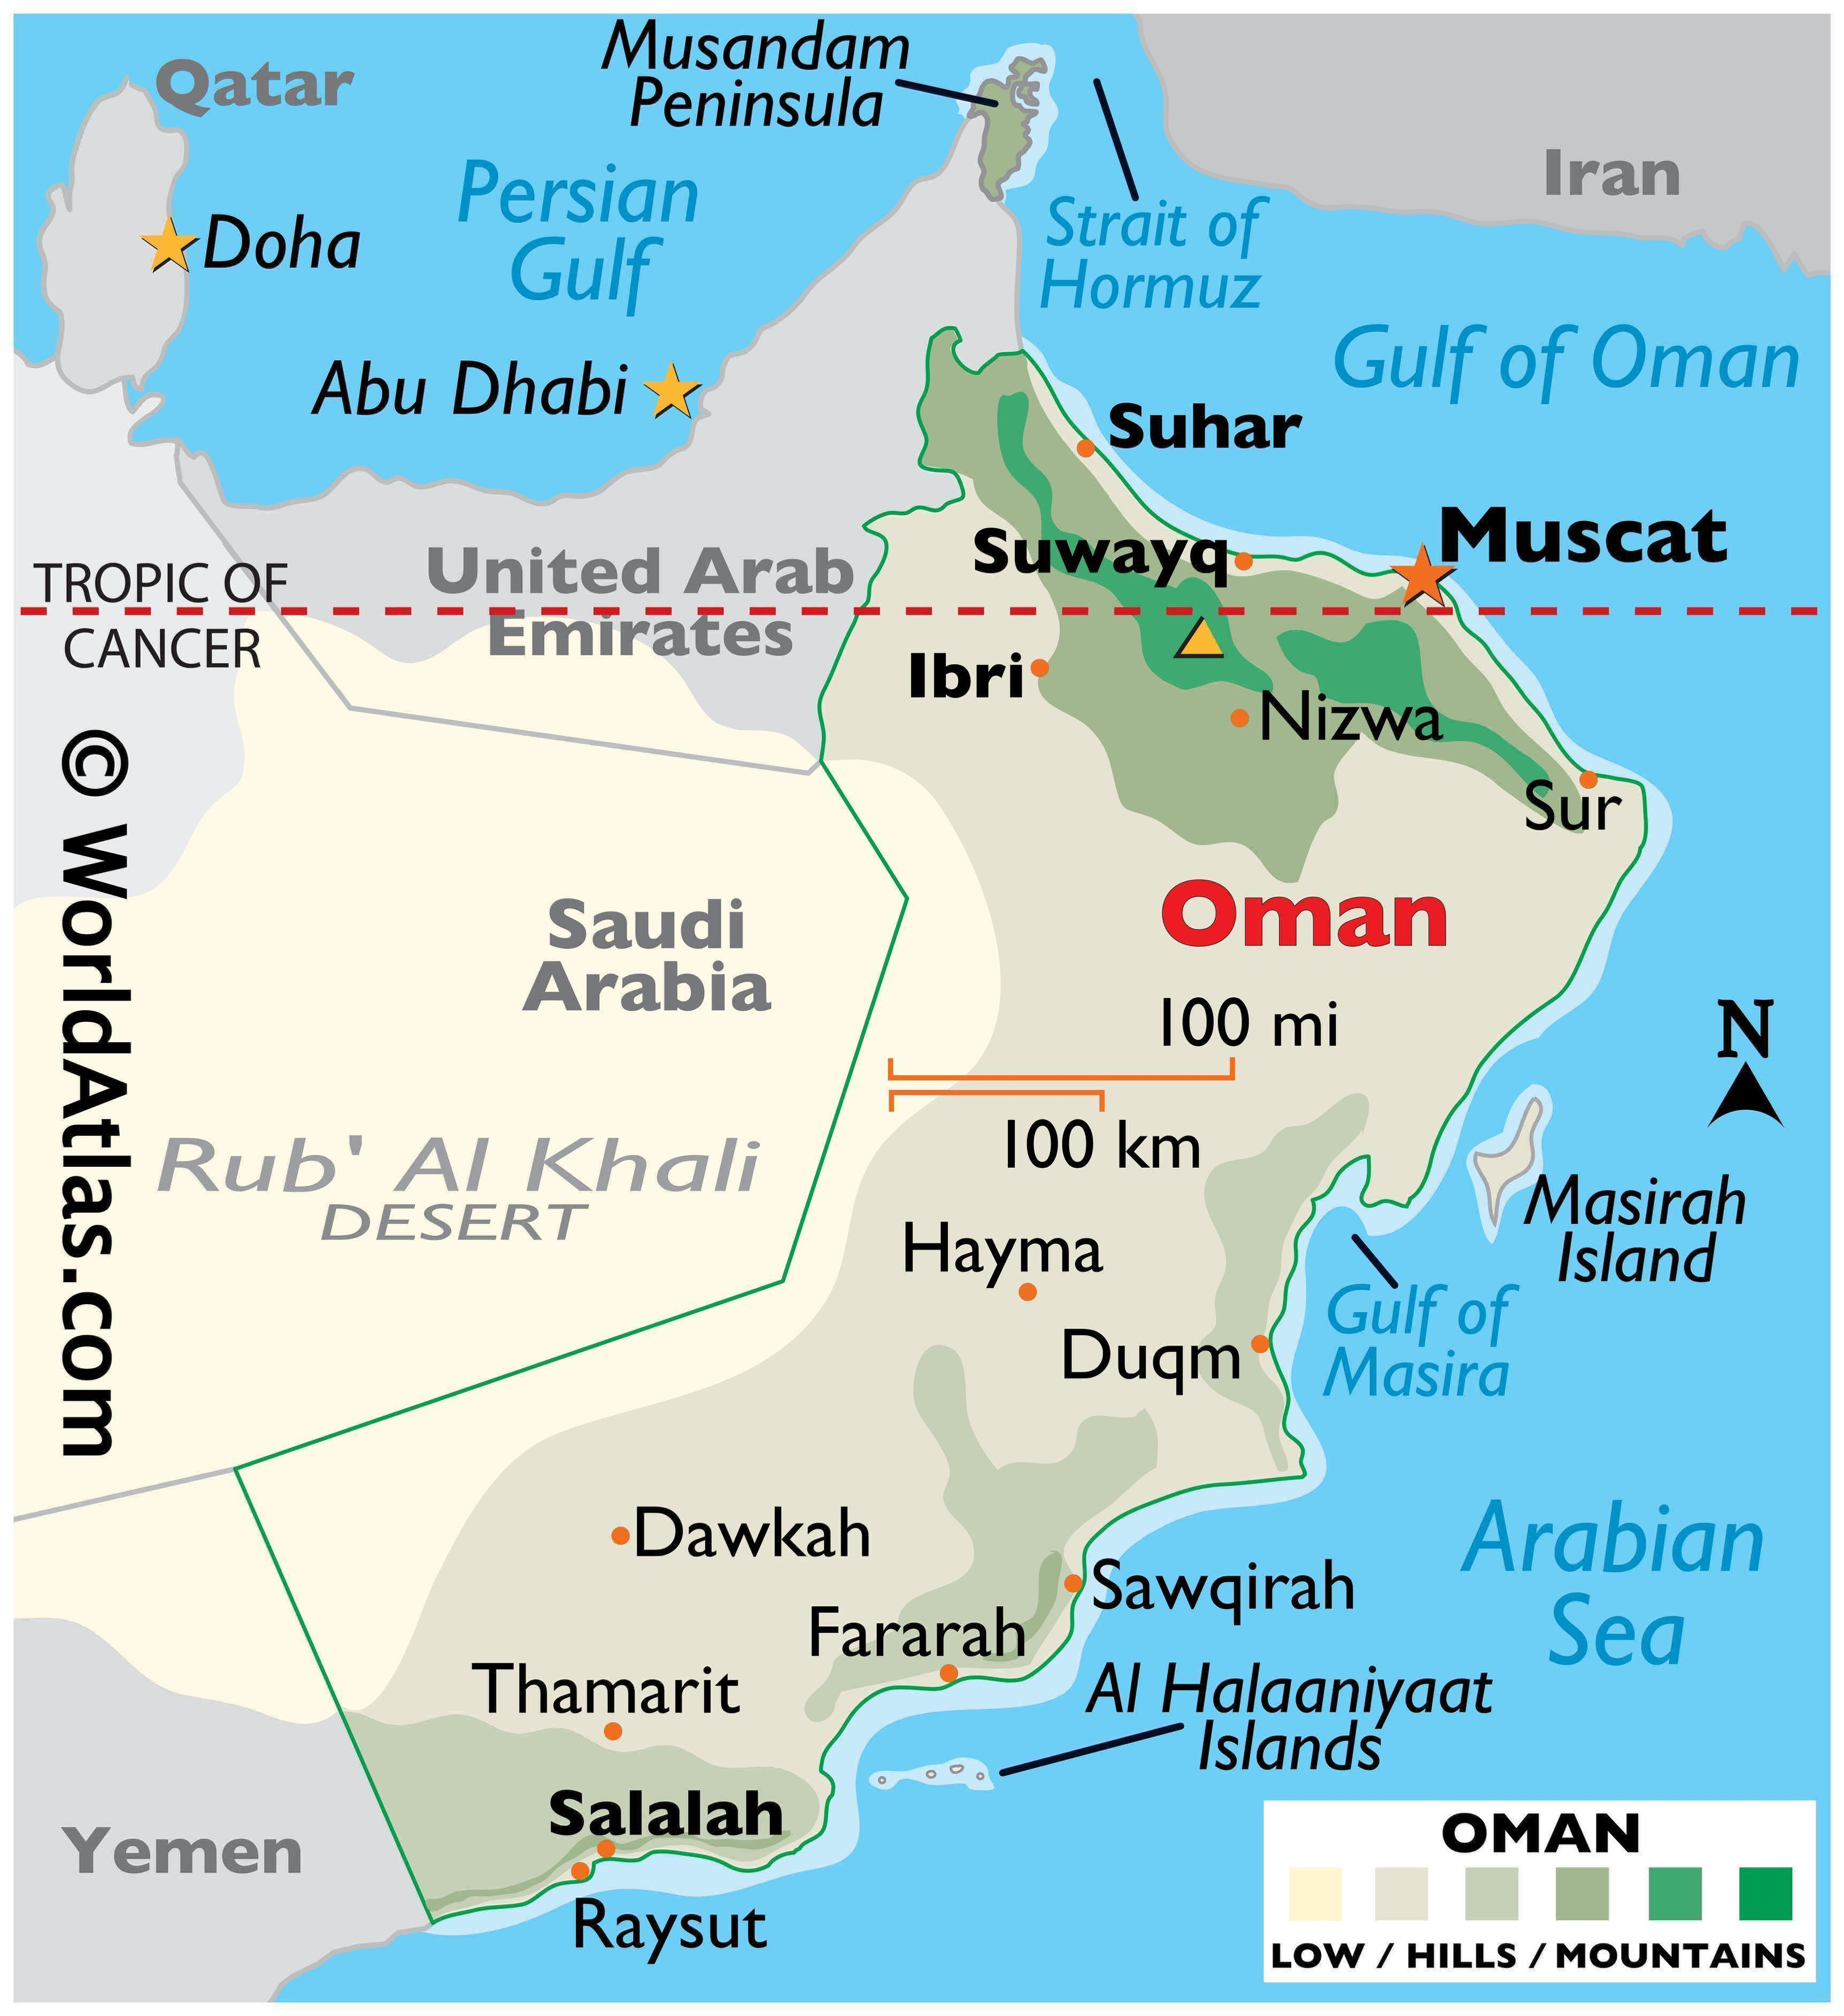 Physical Map of Oman showing state boundaries, relief, highest point, important cities, Musandam Peninsula, islands, etc.